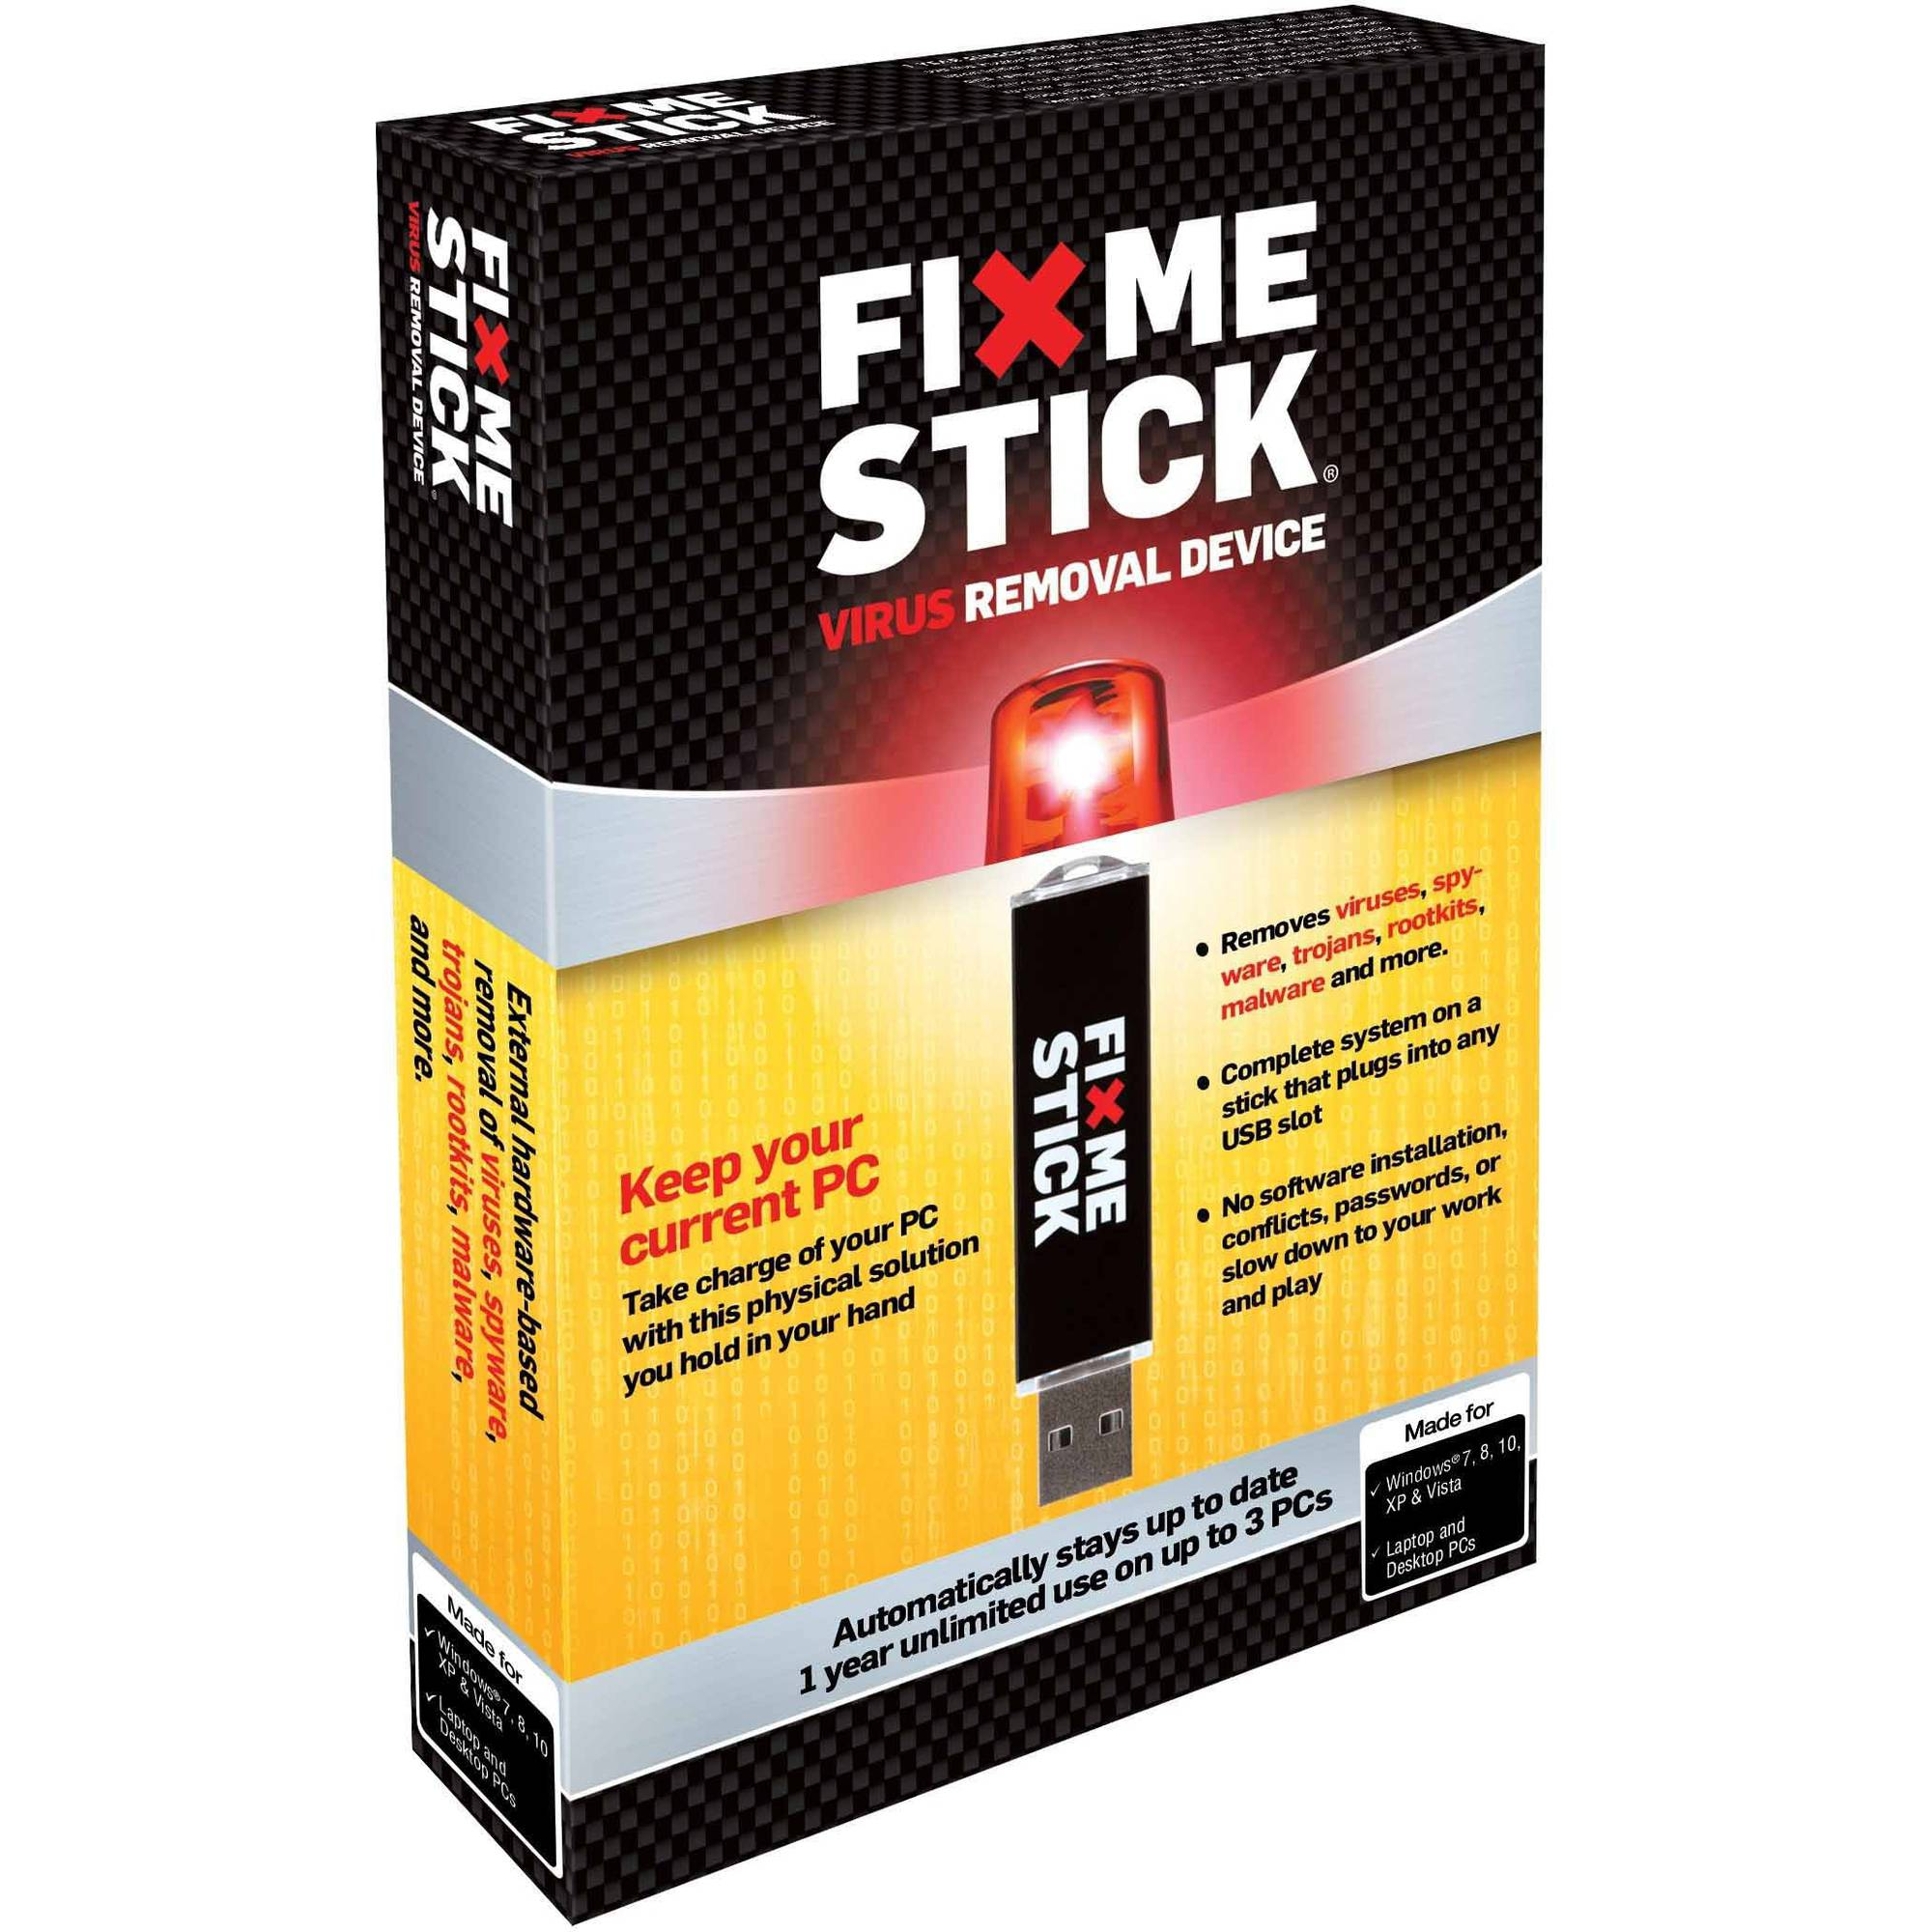 FixMeStick - Virus Removal Device - Unlimited Use on up to 3 PCs